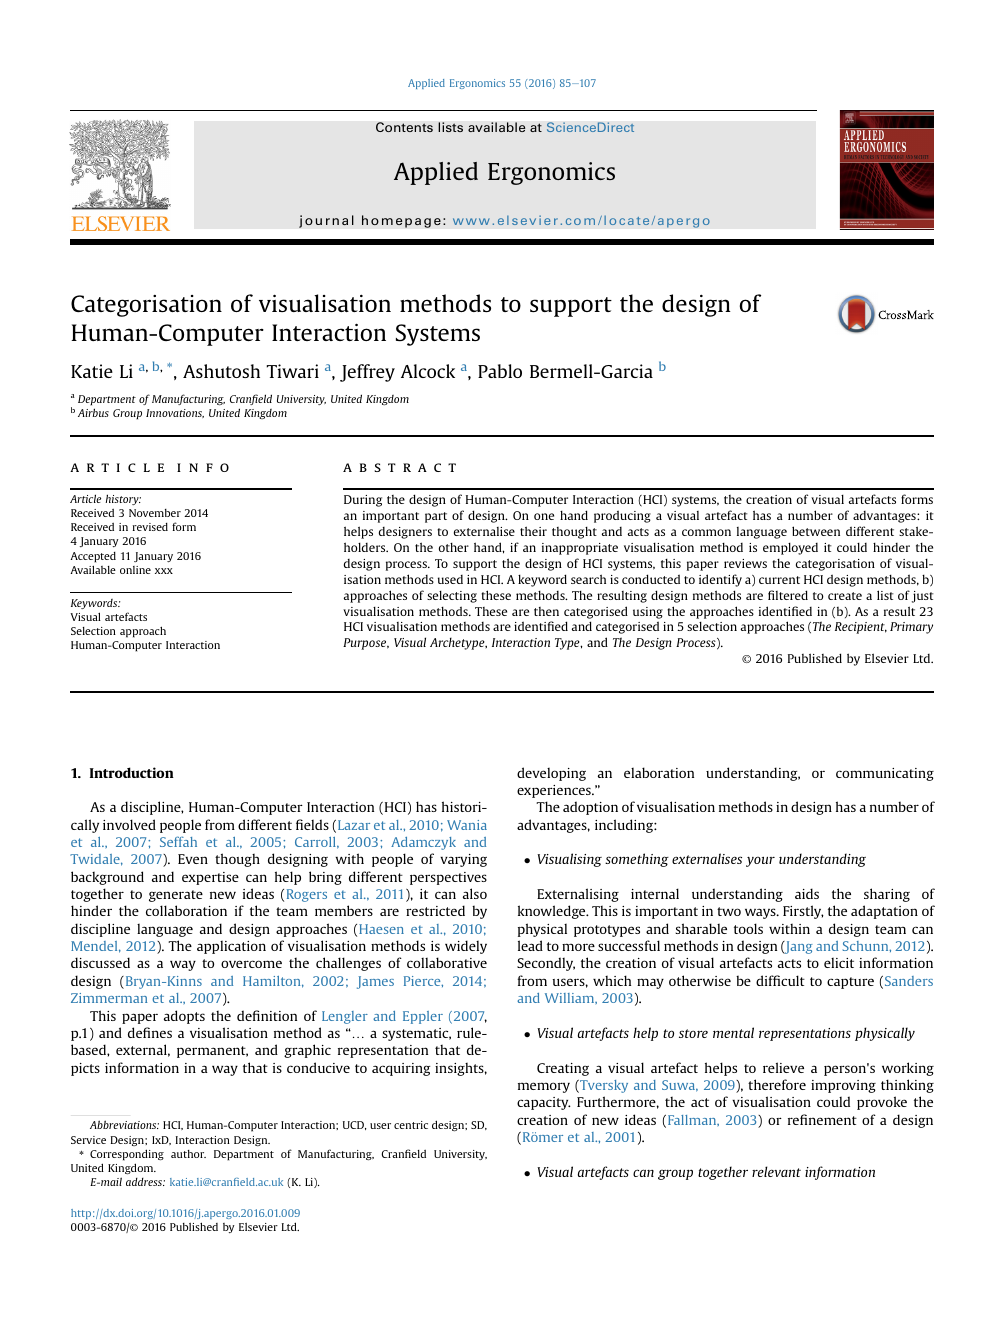 Categorisation Of Visualisation Methods To Support The Design Of Human Computer Interaction Systems Topic Of Research Paper In Educational Sciences Download Scholarly Article Pdf And Read For Free On Cyberleninka Open Science